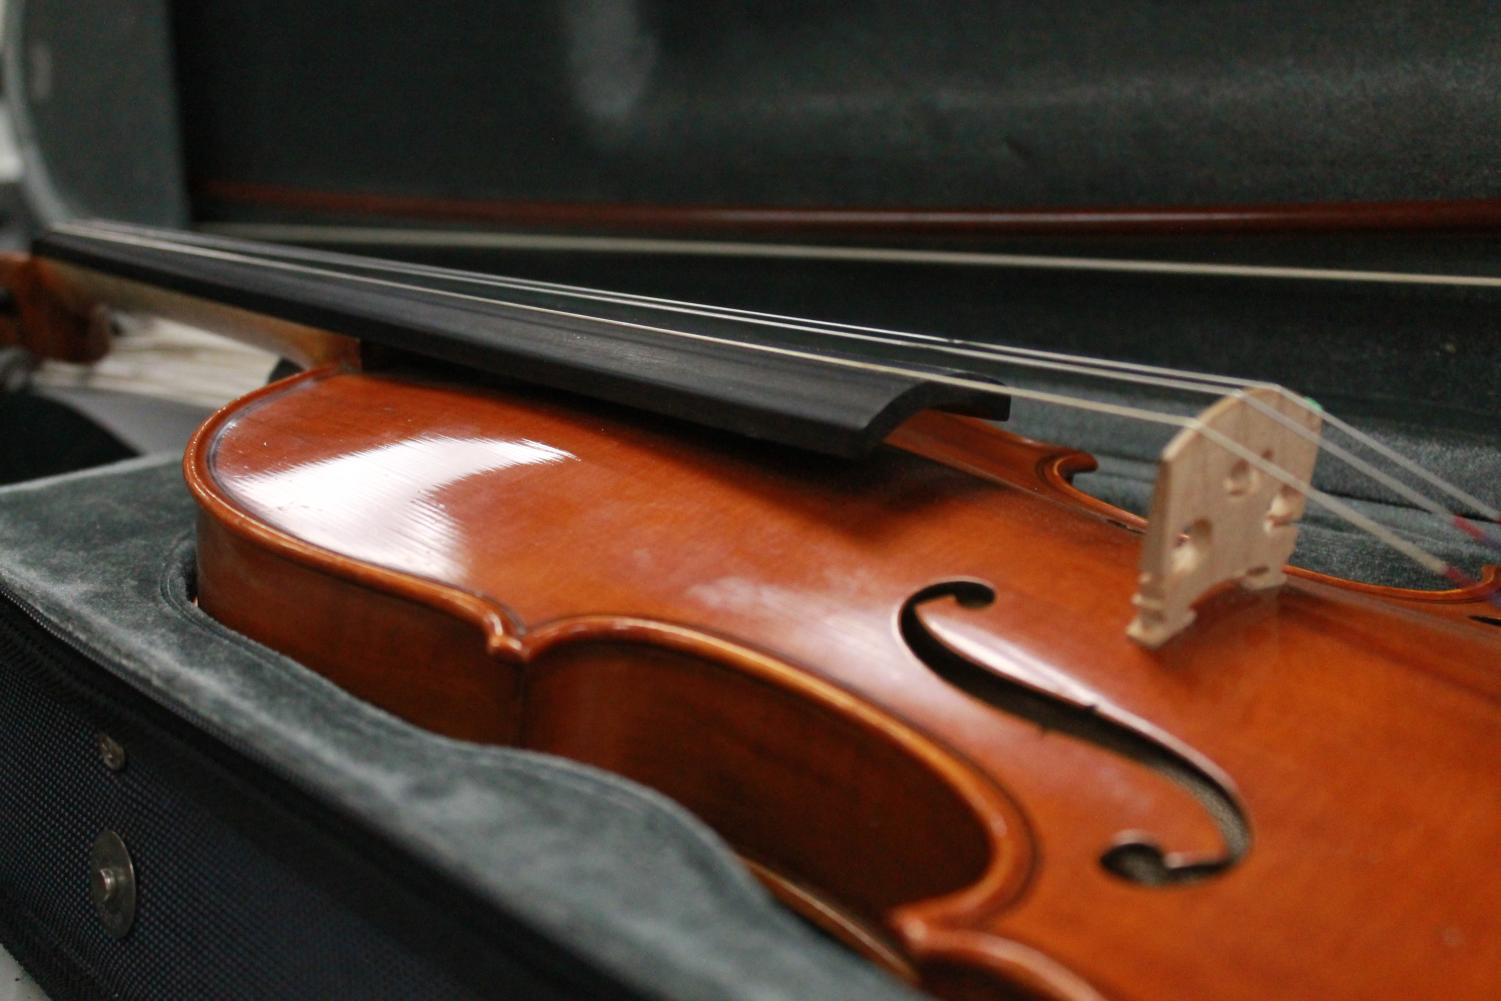 The orchestra traveled to all the elementary schools in town on Feb. 28. Elementary schoolers guessed which instruments were which at each school.